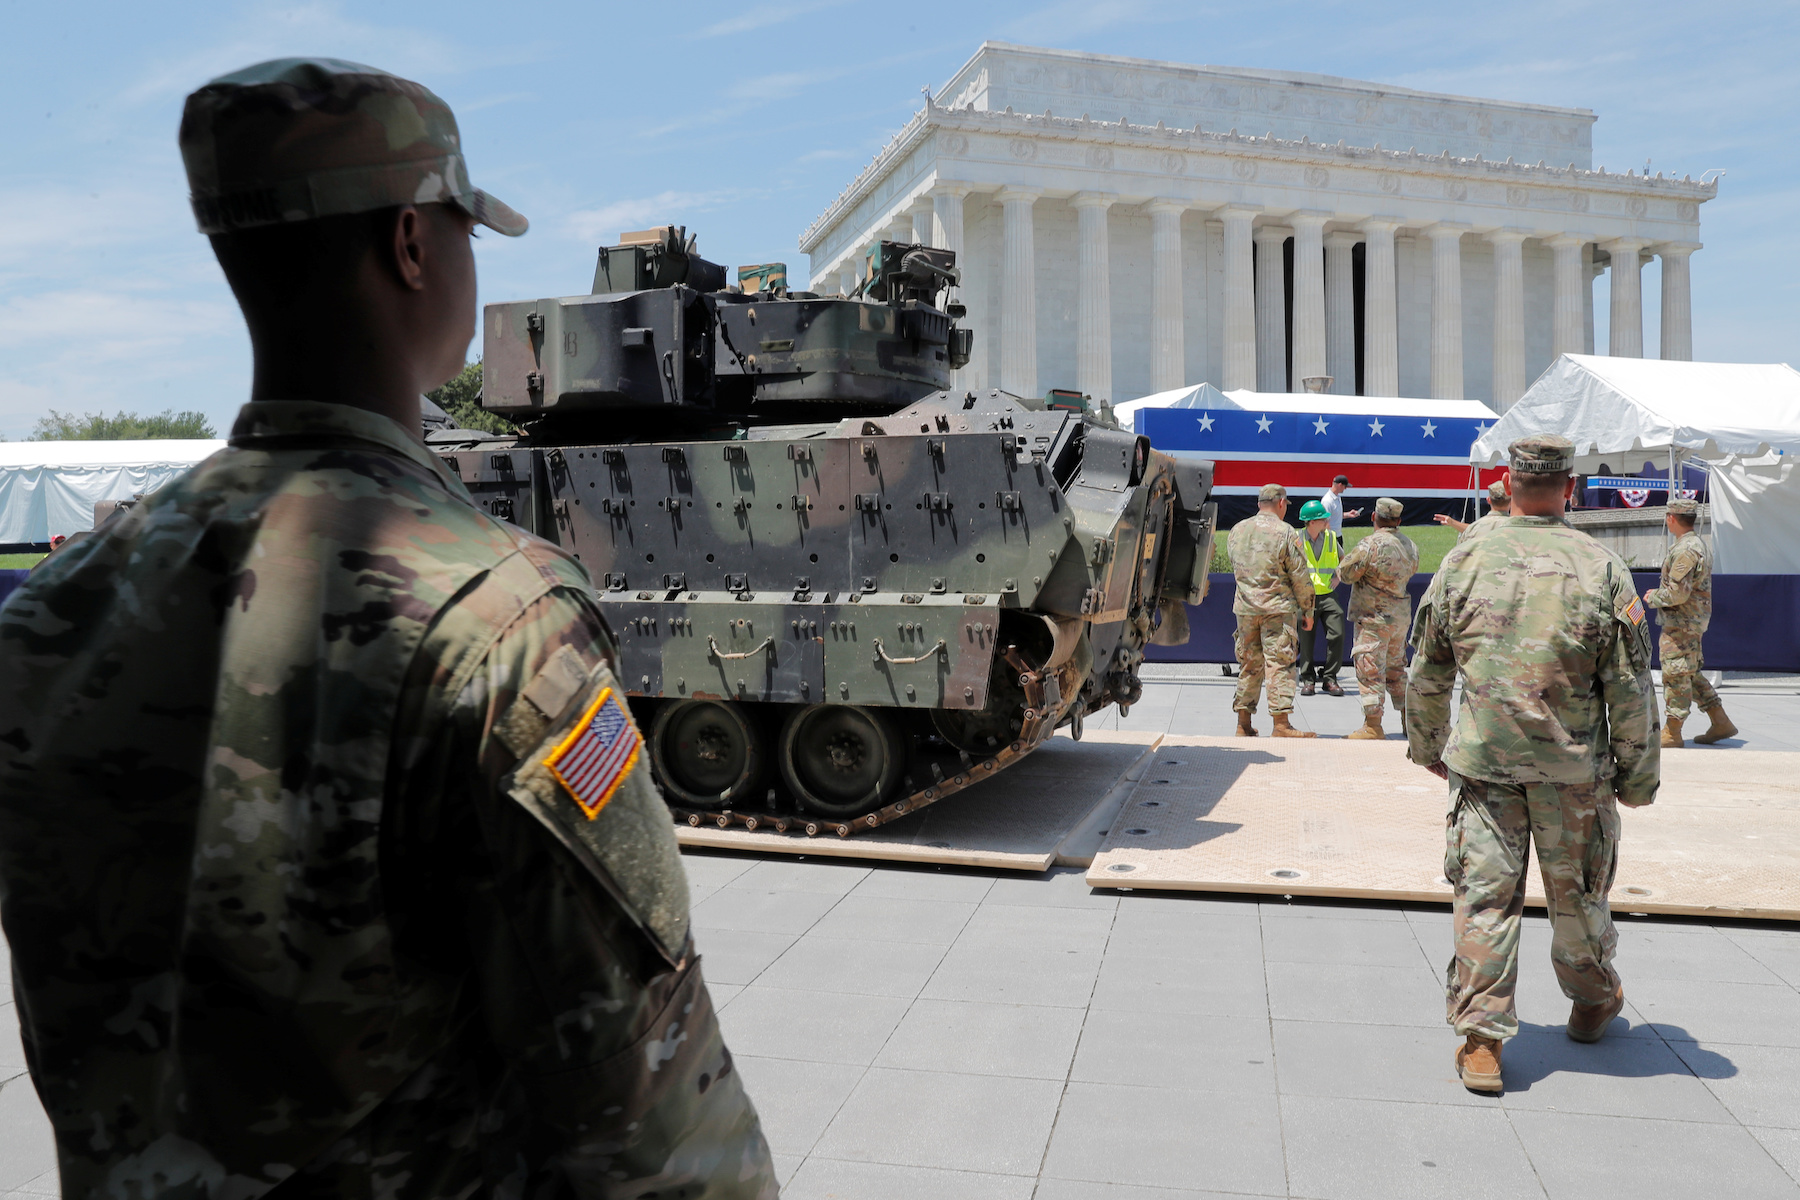 A Bradley Fighting Vehicle is moved into place as July Fourth preparations continue at Lincoln Memorial in Washington